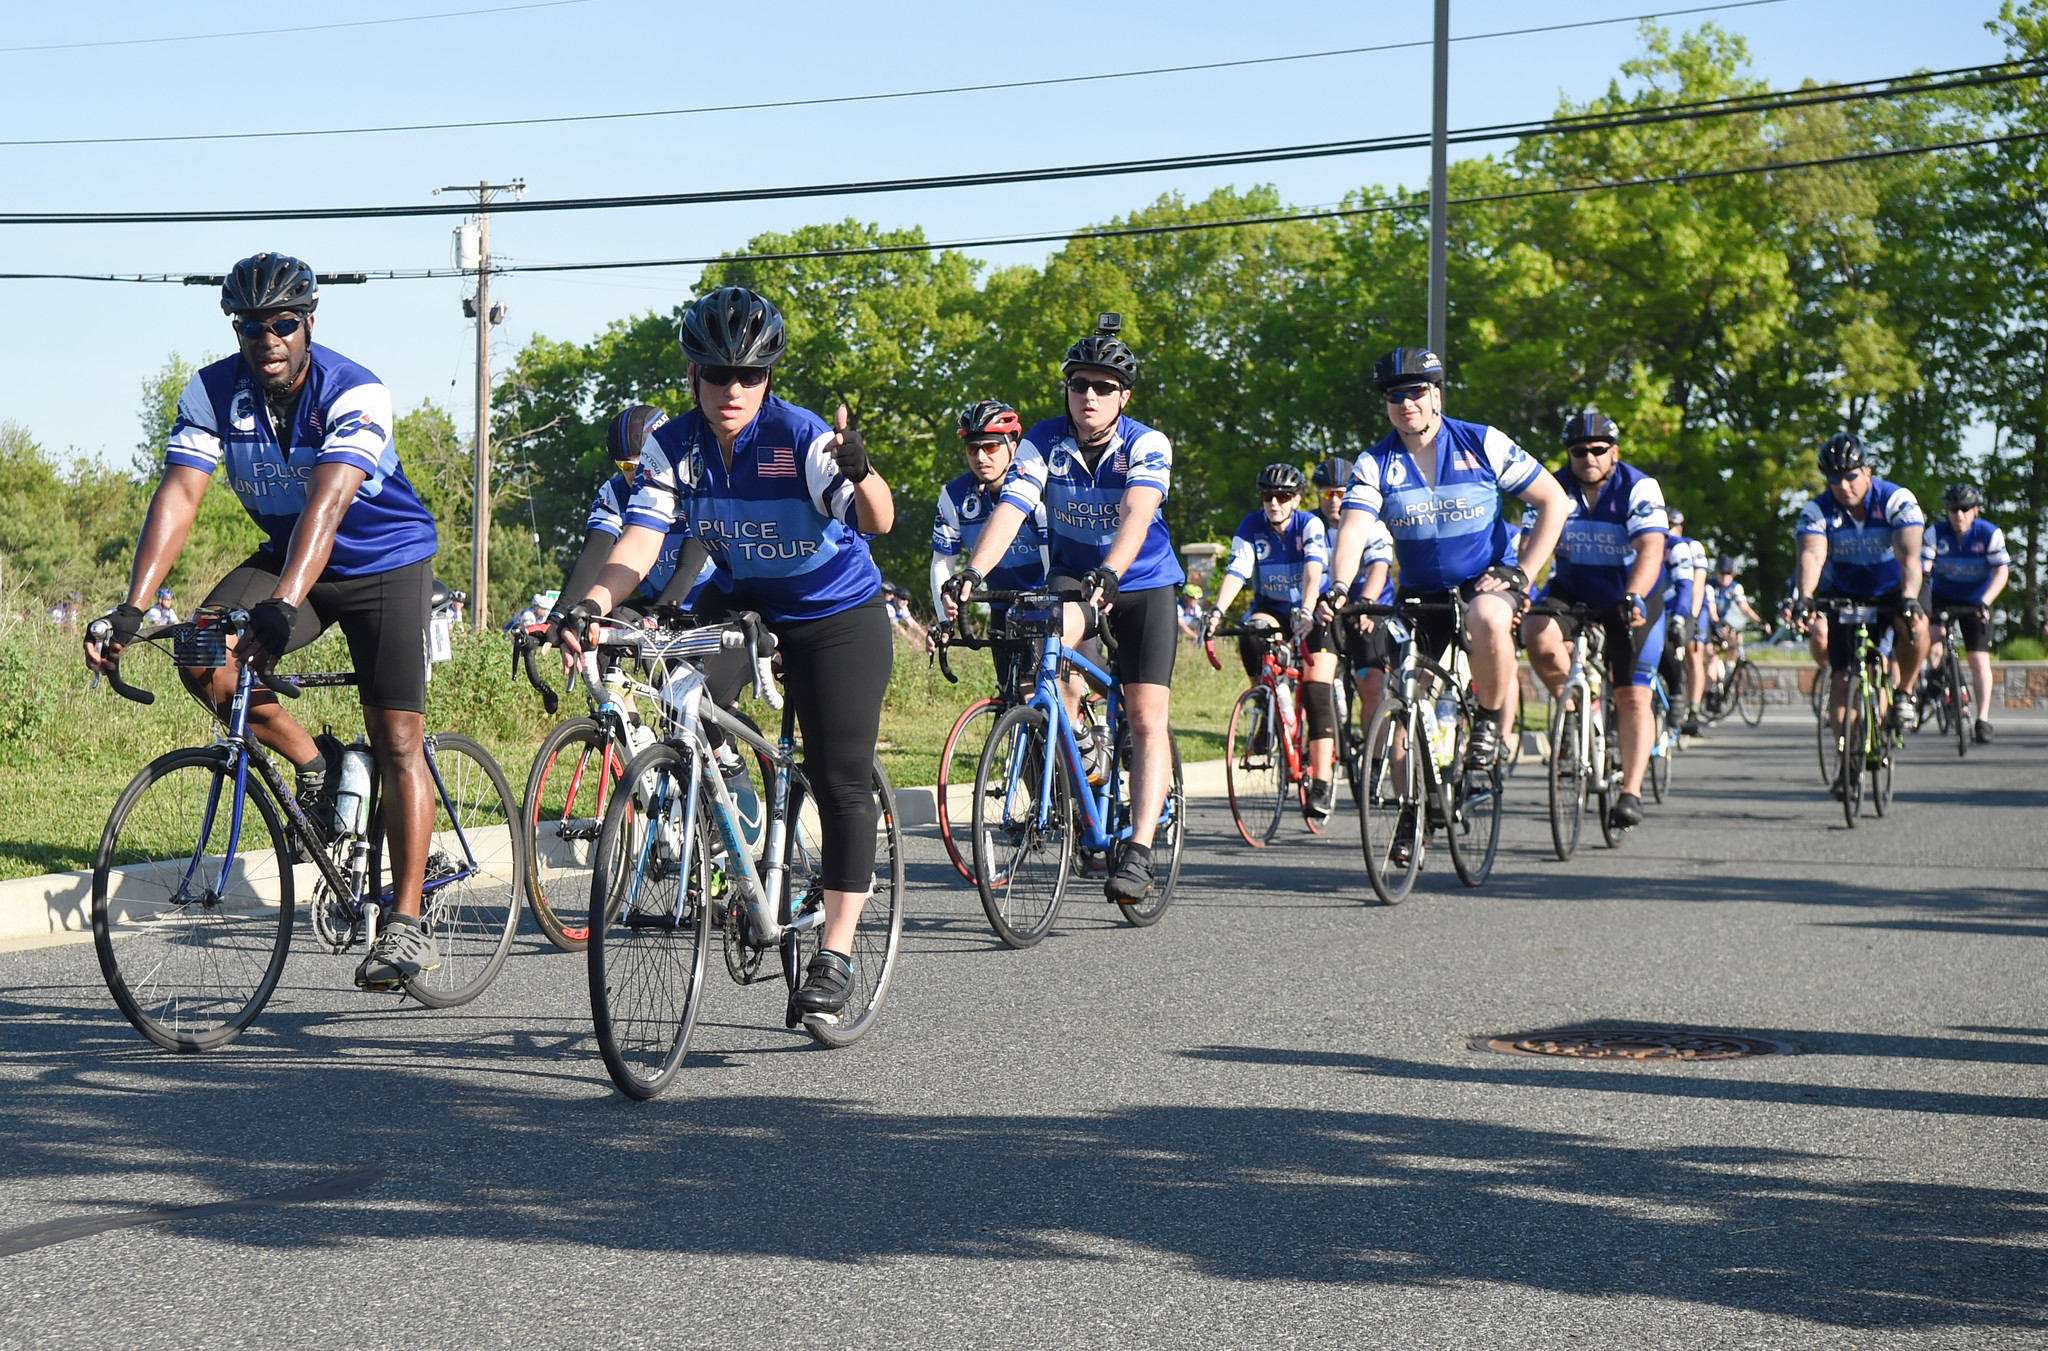 Police Unity Tour  Maryland